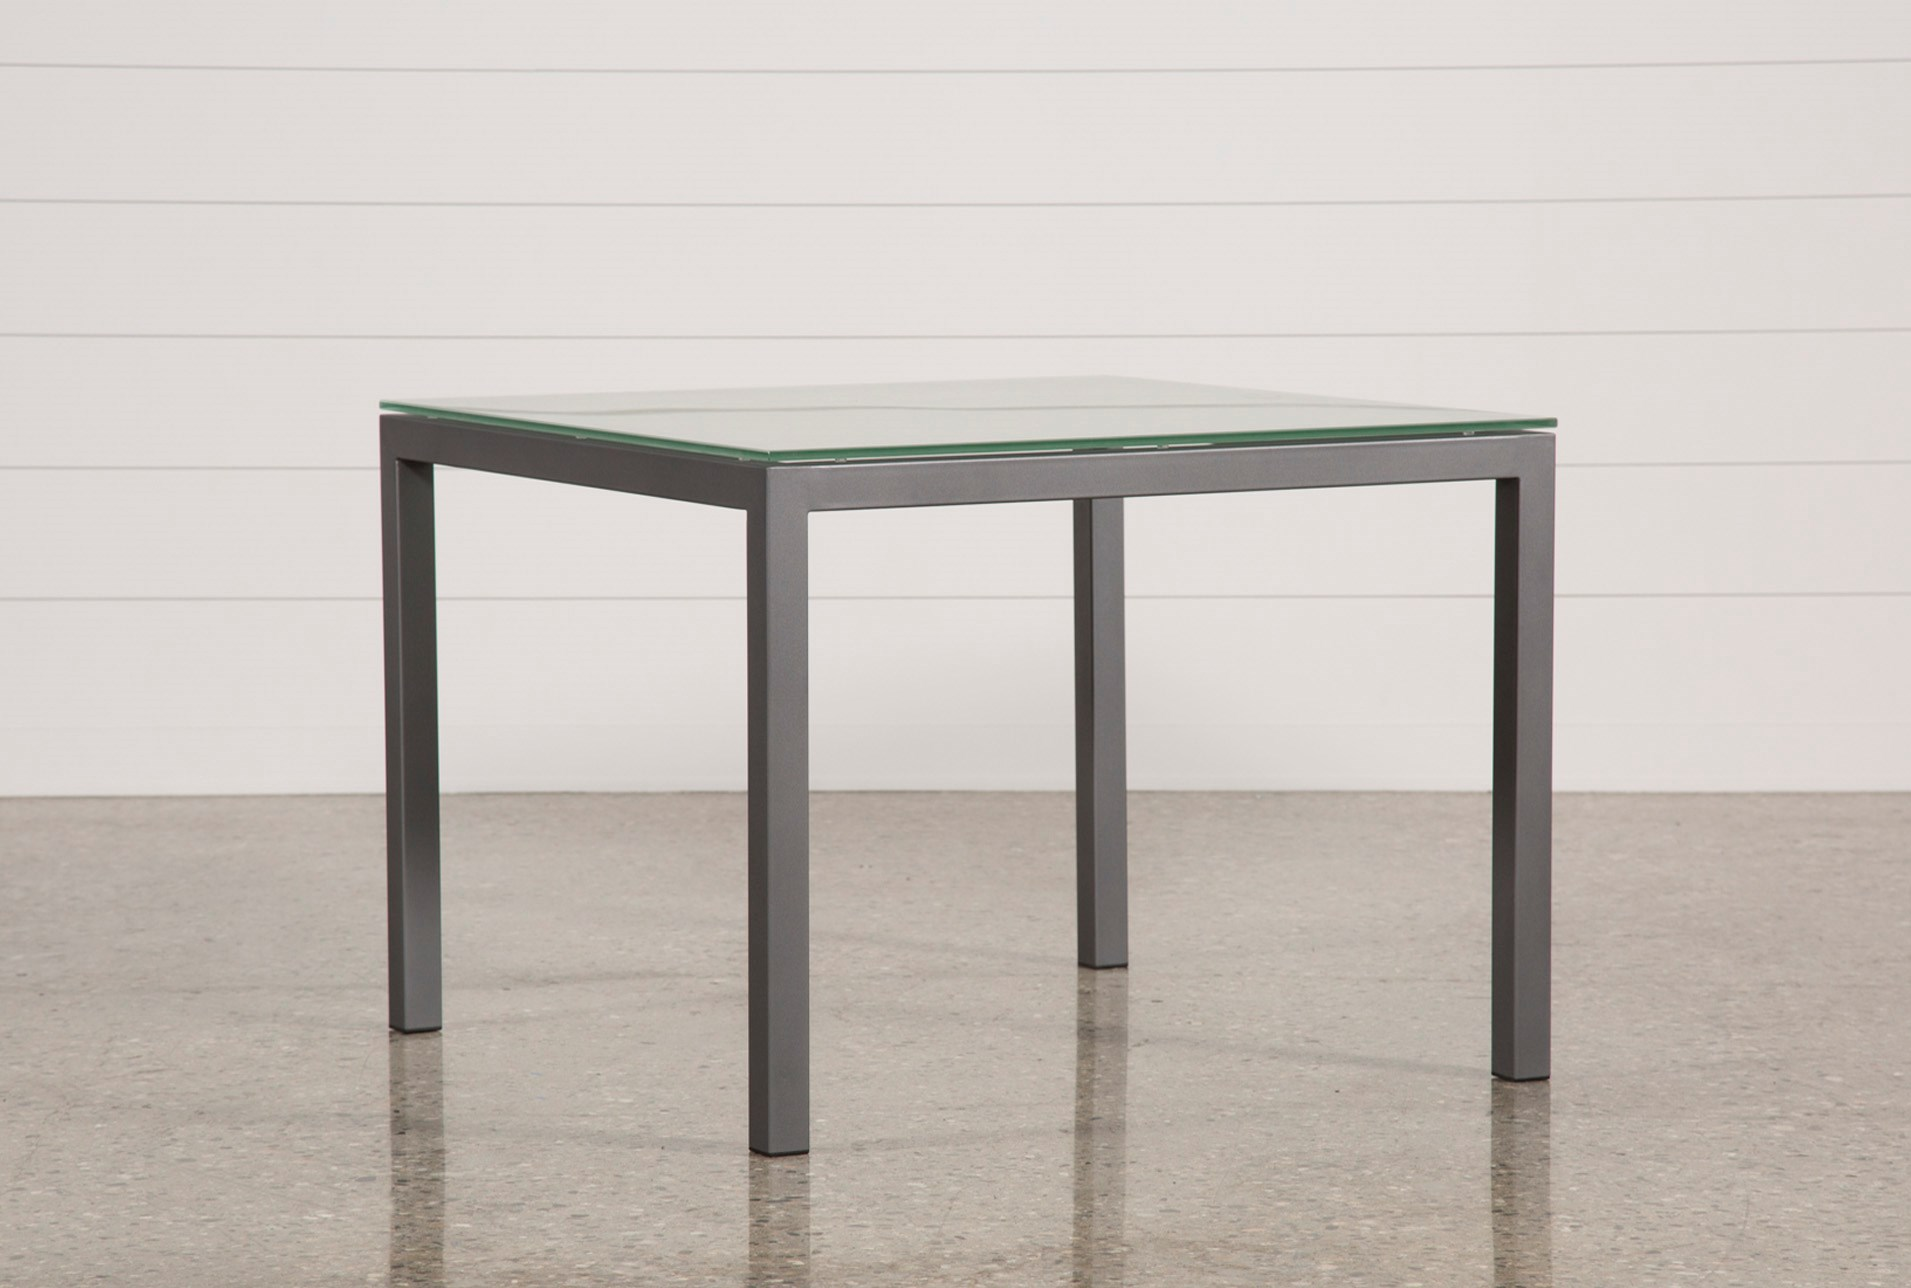 Ina Pewter 40 Inch Square Dining Table W Frosted Gl Qty 1 Has Been Successfully Added To Your Cart